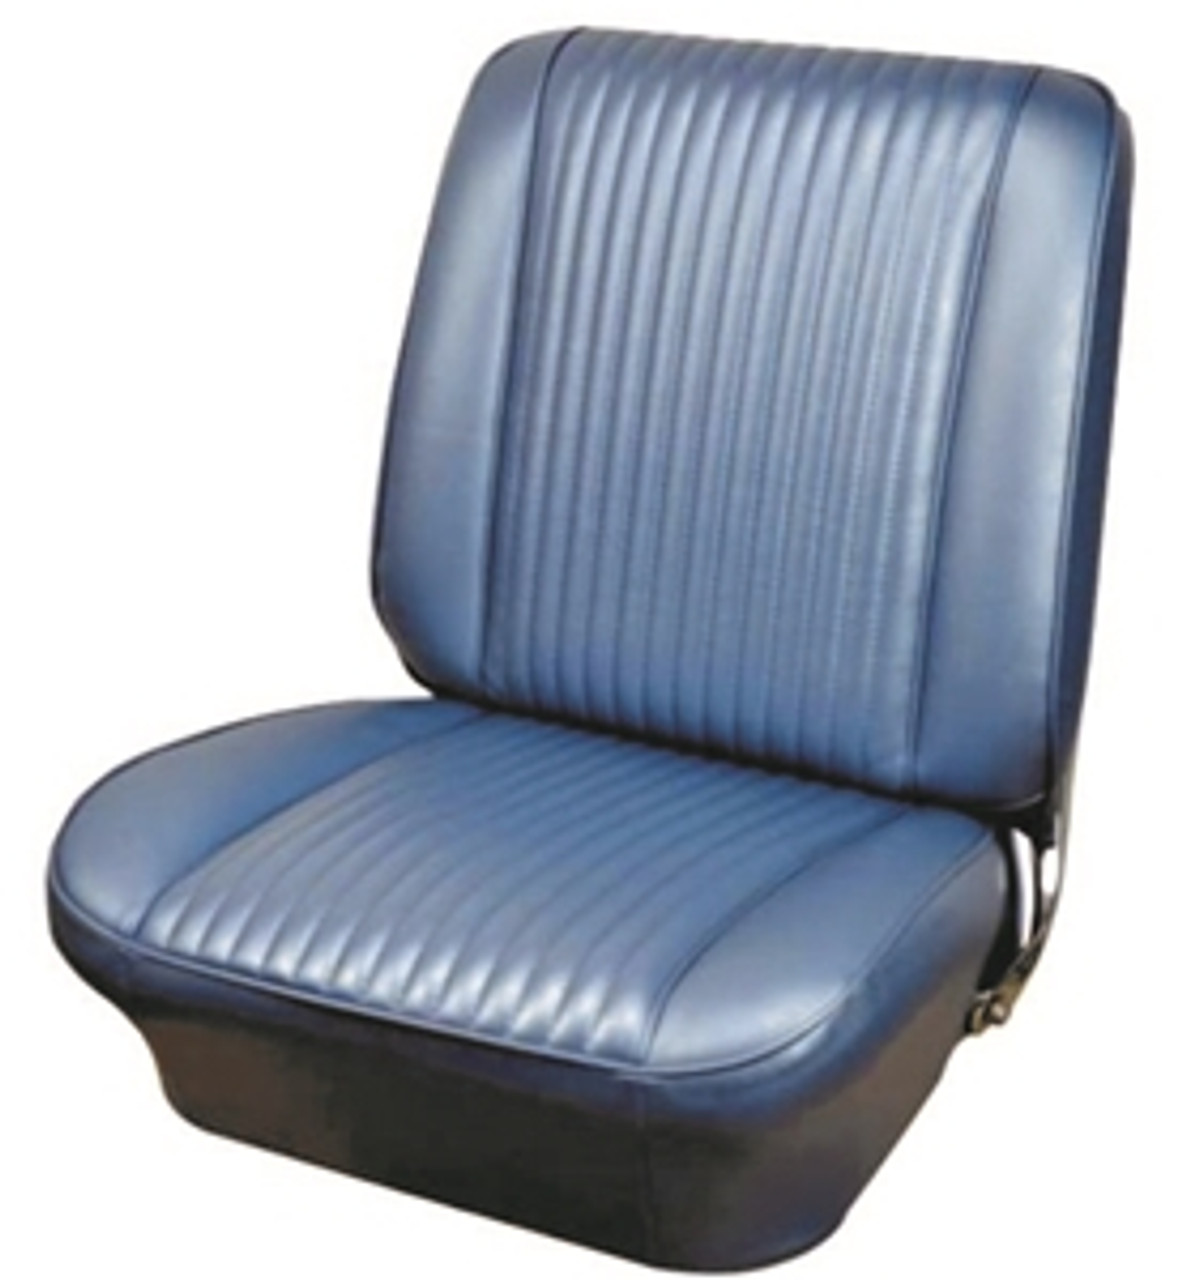 1964 Chevelle Seat Covers (Front & Rear)